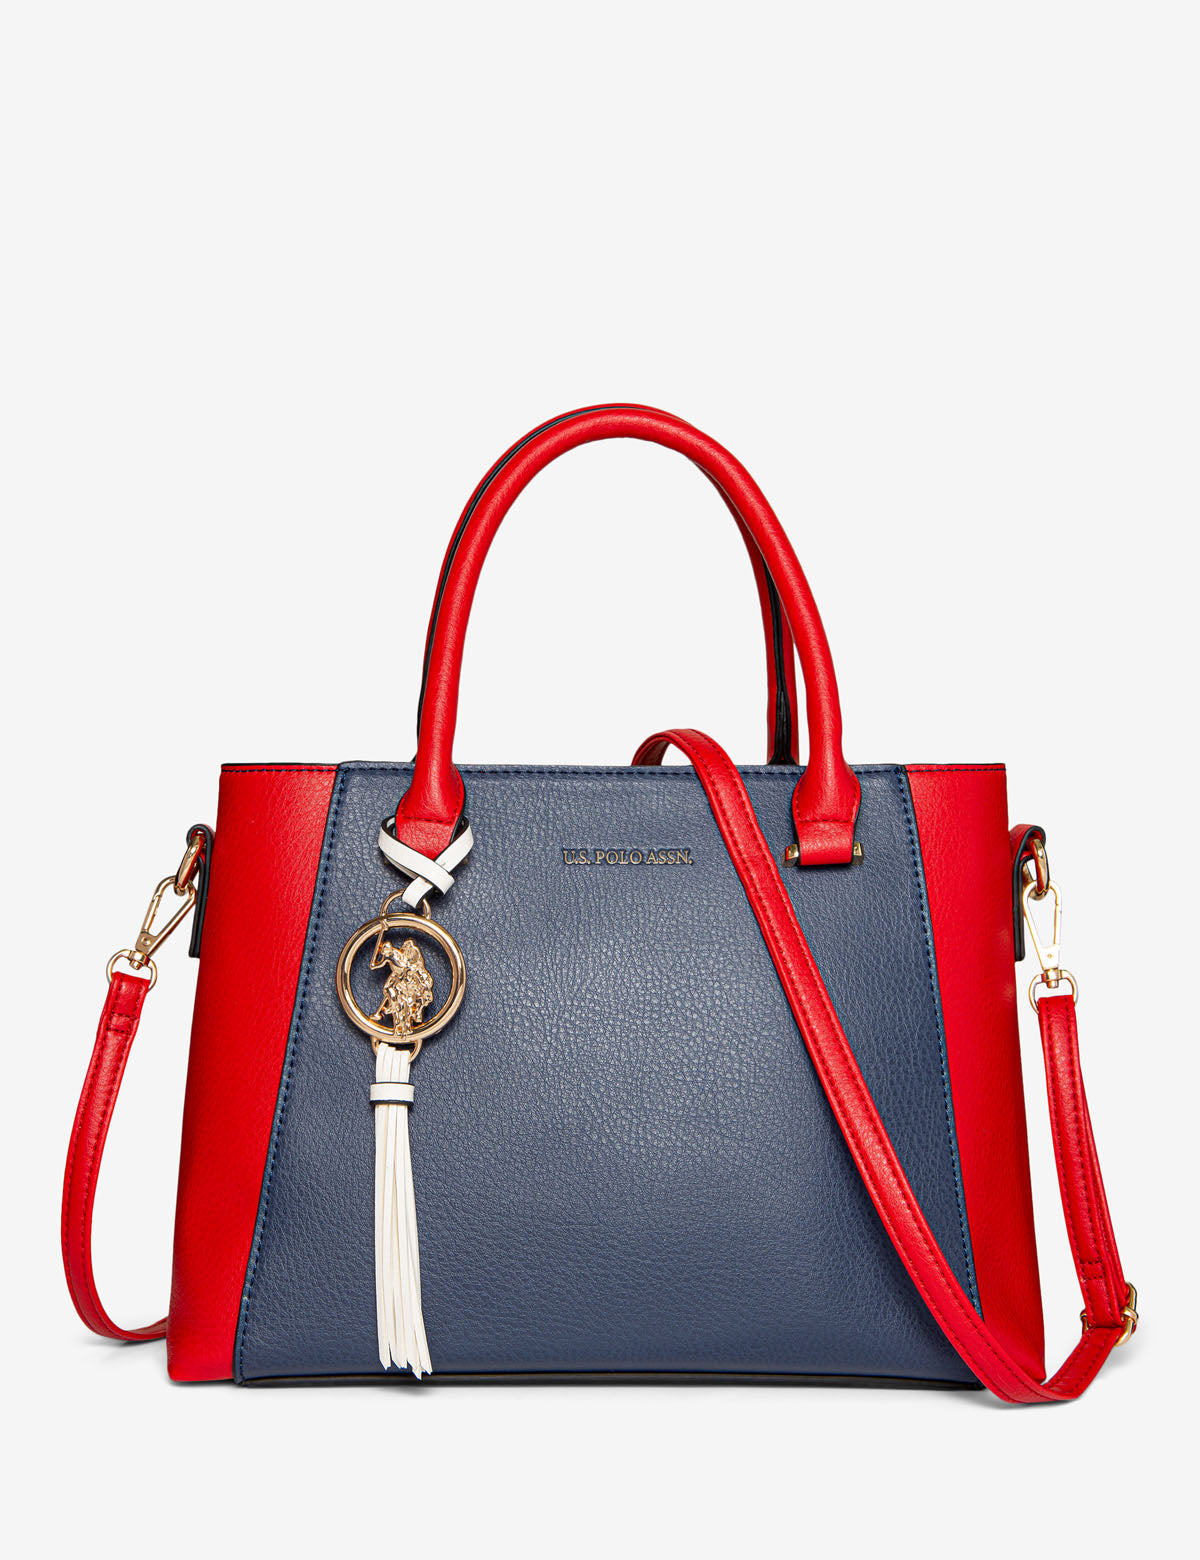 COLORBLOCK SATCHEL WITH LOGO MEDALLION